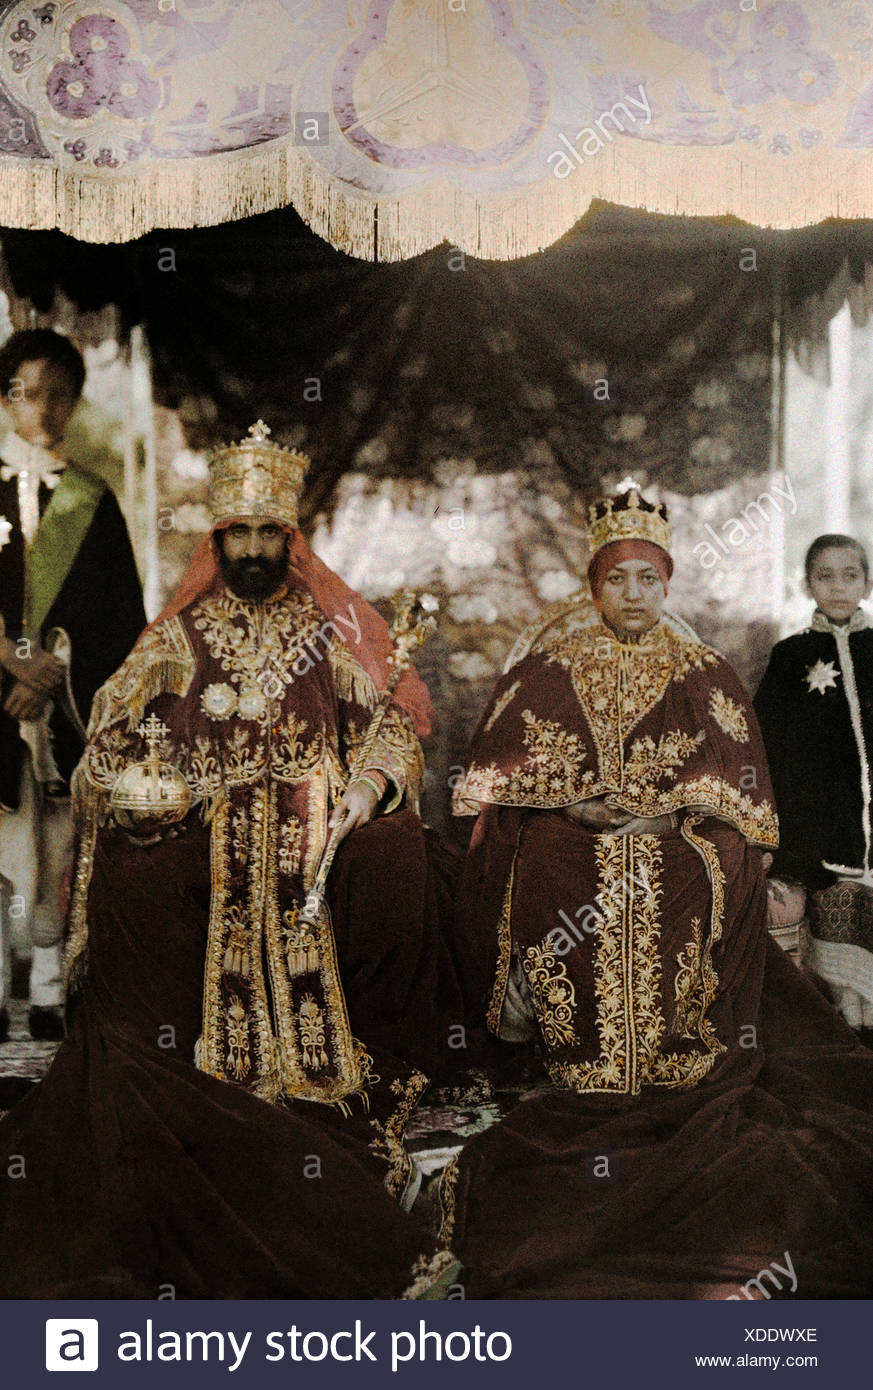 The monarchs Haile Selassie the First and Manen, pose in their robes. - Stock Image